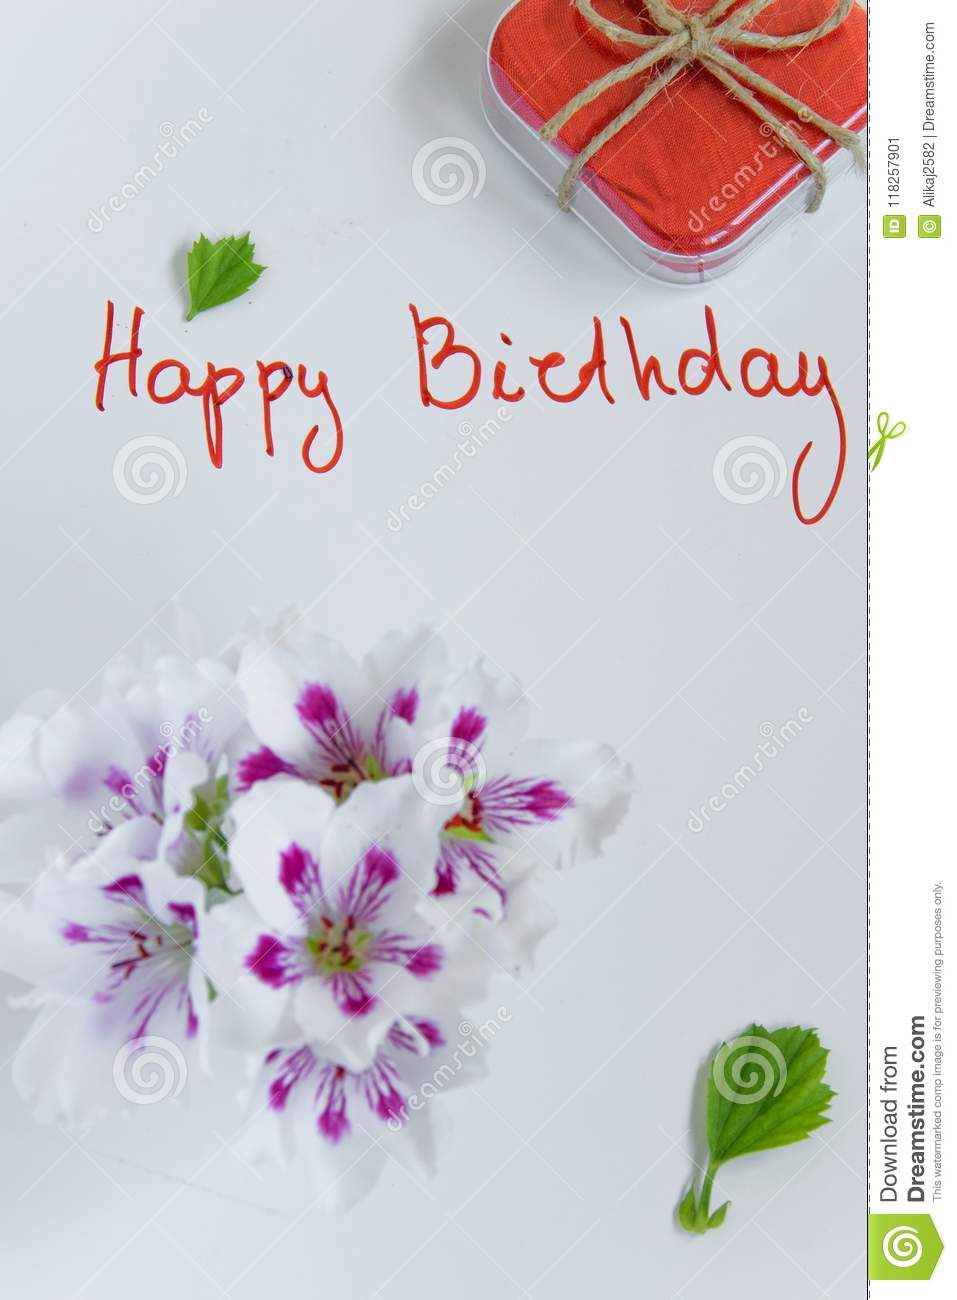 Happy Birthday Greeting Card With Gift Box And Fresh Flowers Stock